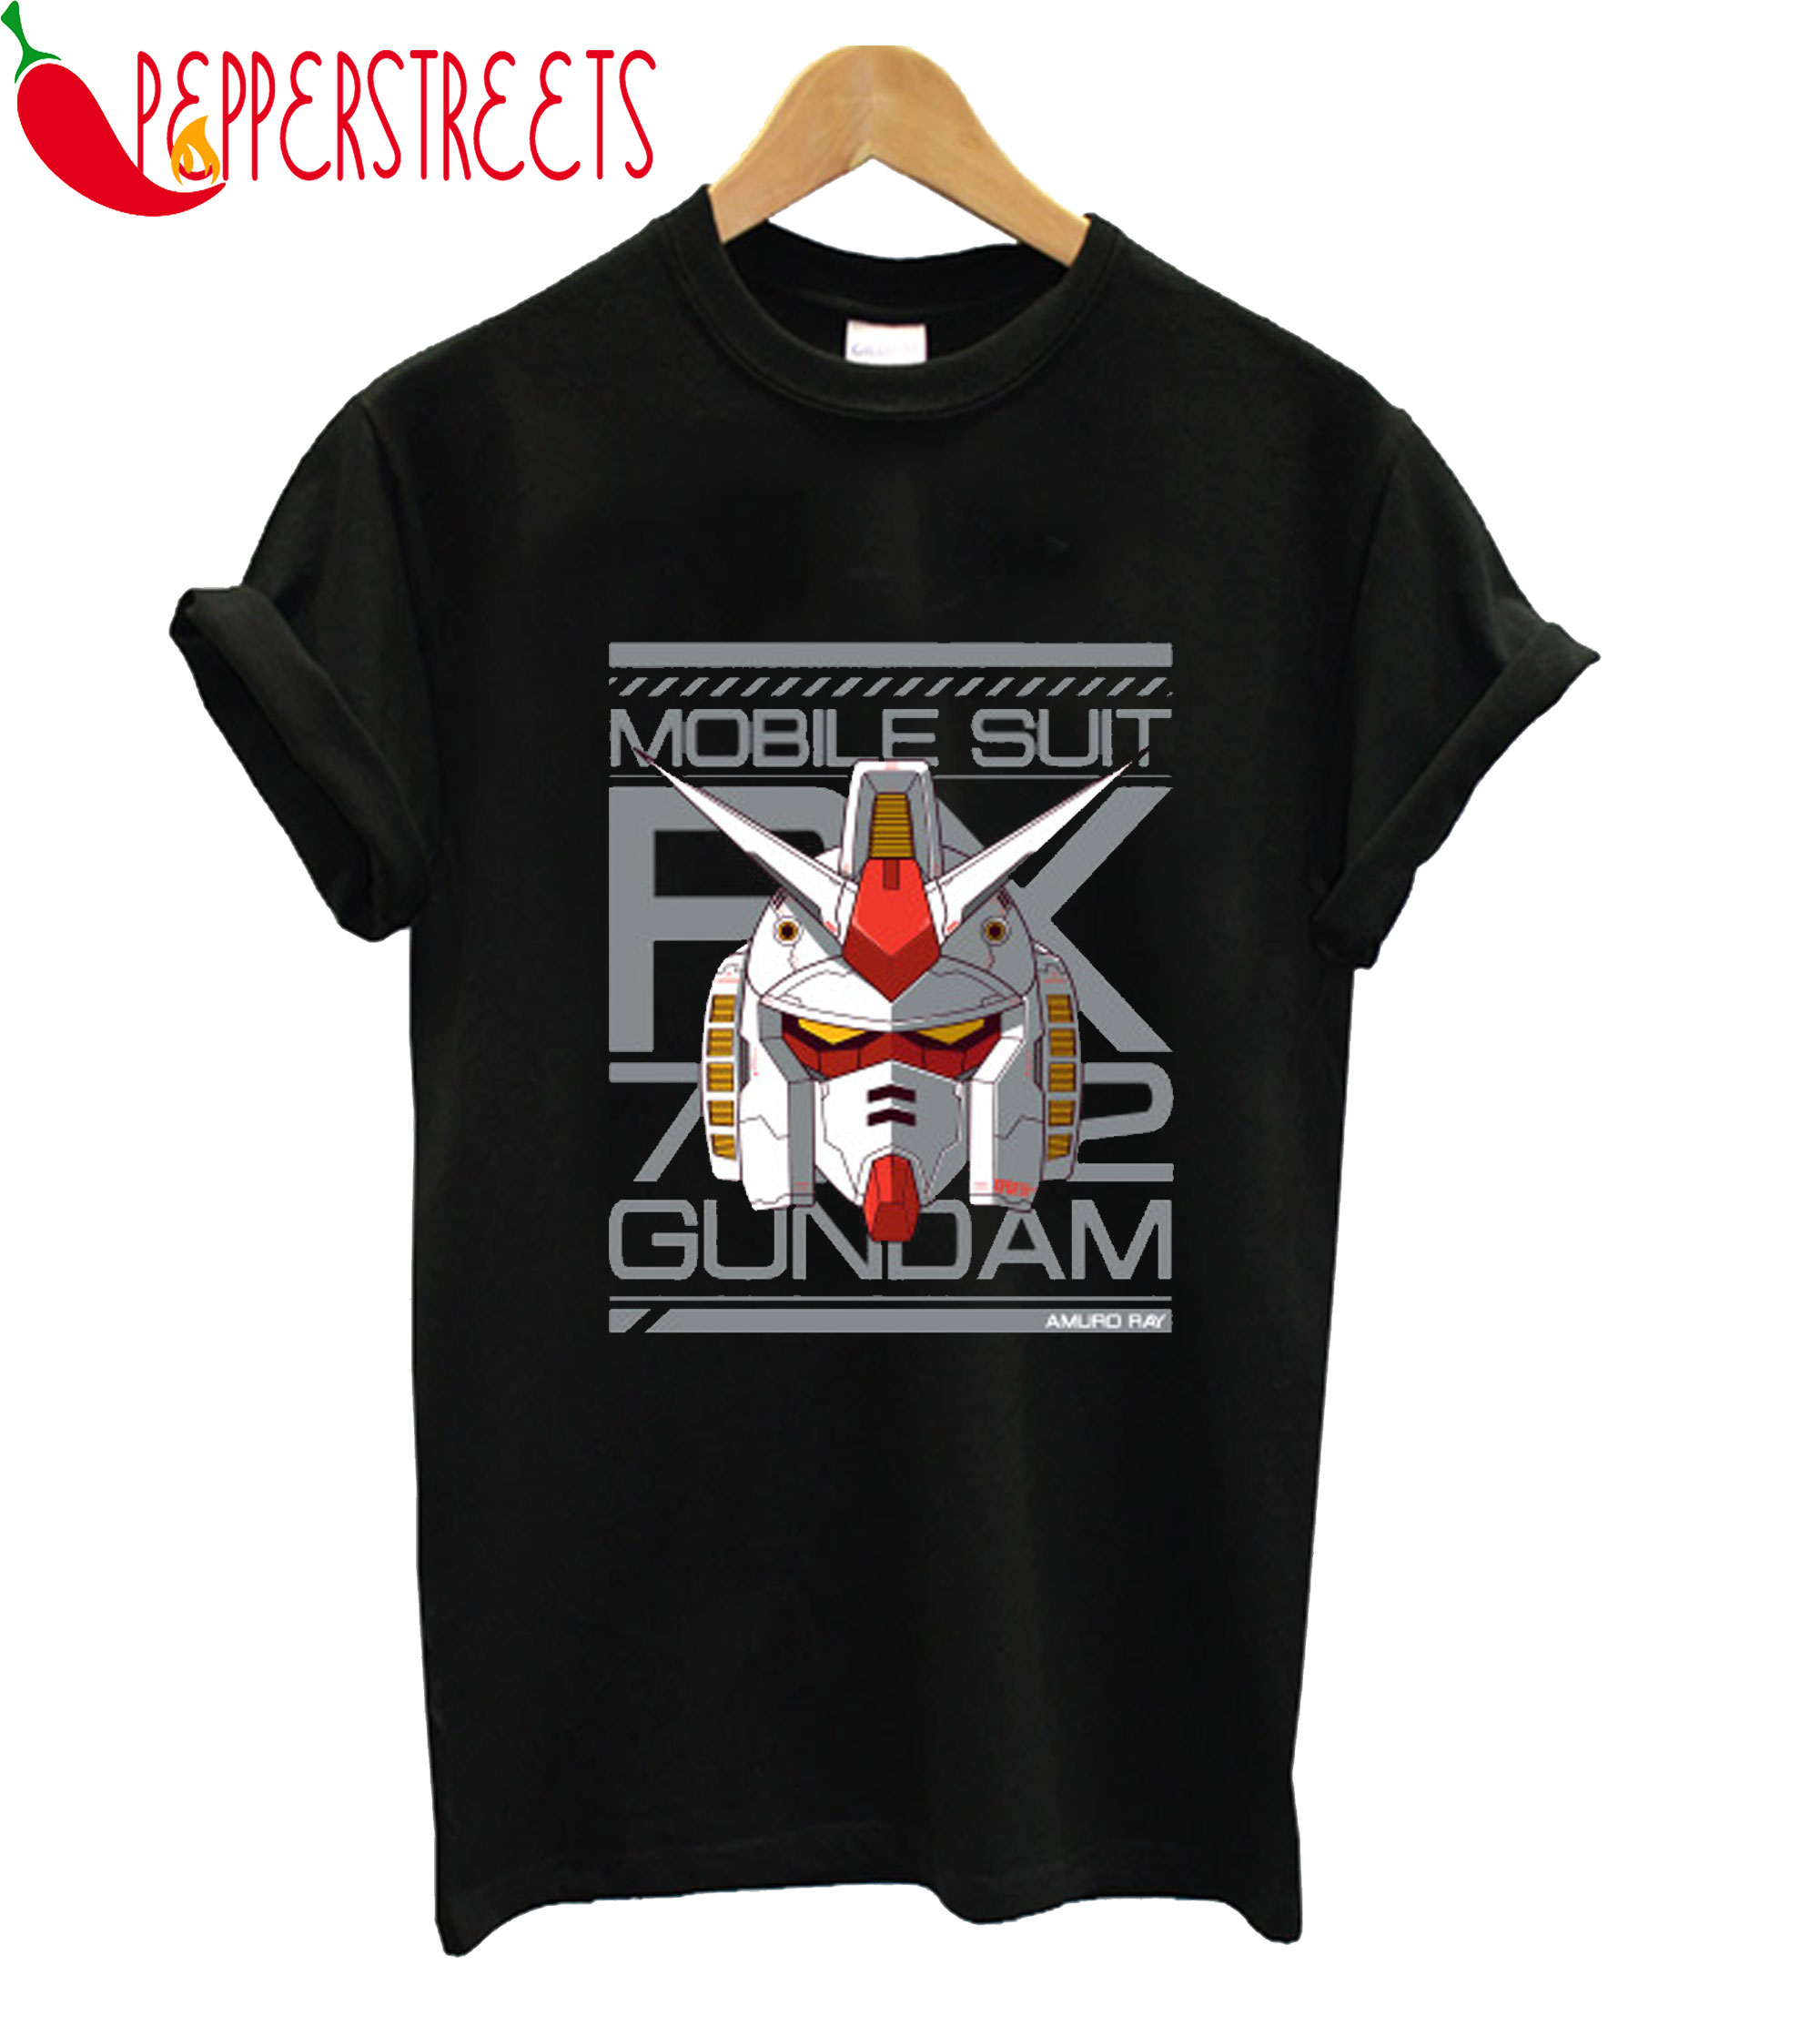 Mobile Suit Rk 72 Gundam T-Shirt